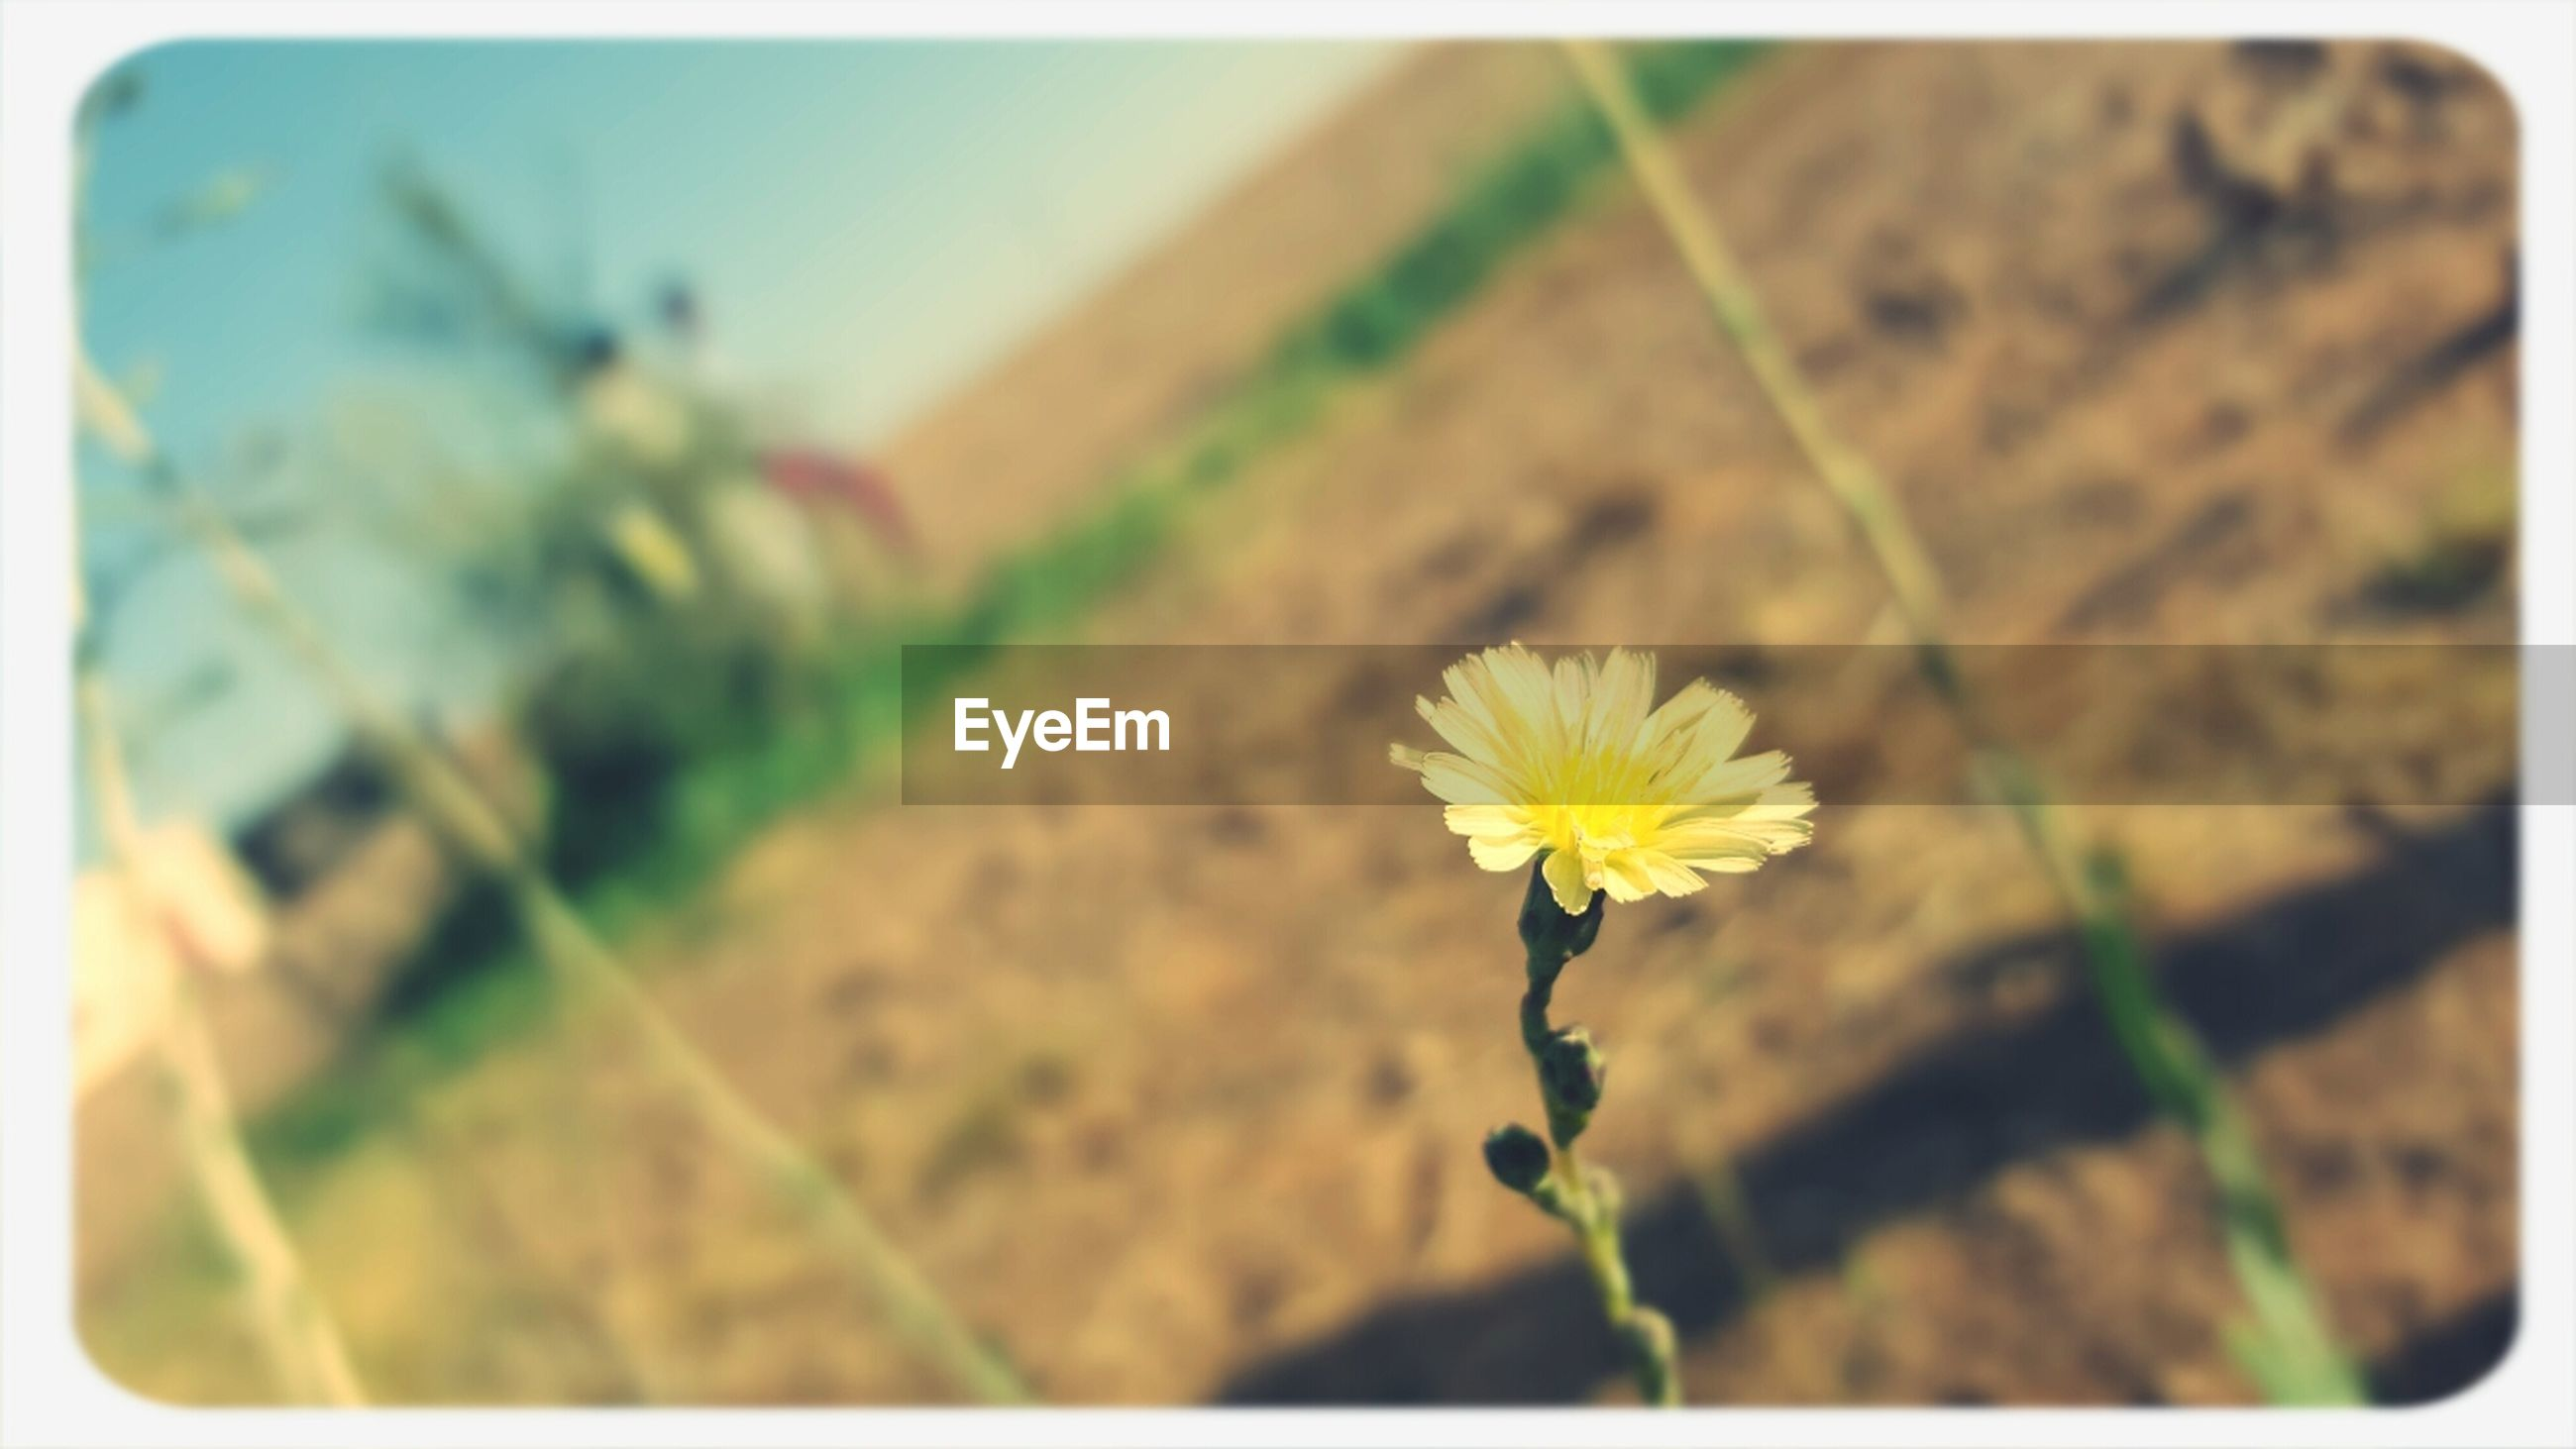 flower, fragility, transfer print, freshness, petal, growth, flower head, focus on foreground, plant, blooming, close-up, beauty in nature, yellow, auto post production filter, nature, stem, selective focus, in bloom, field, day